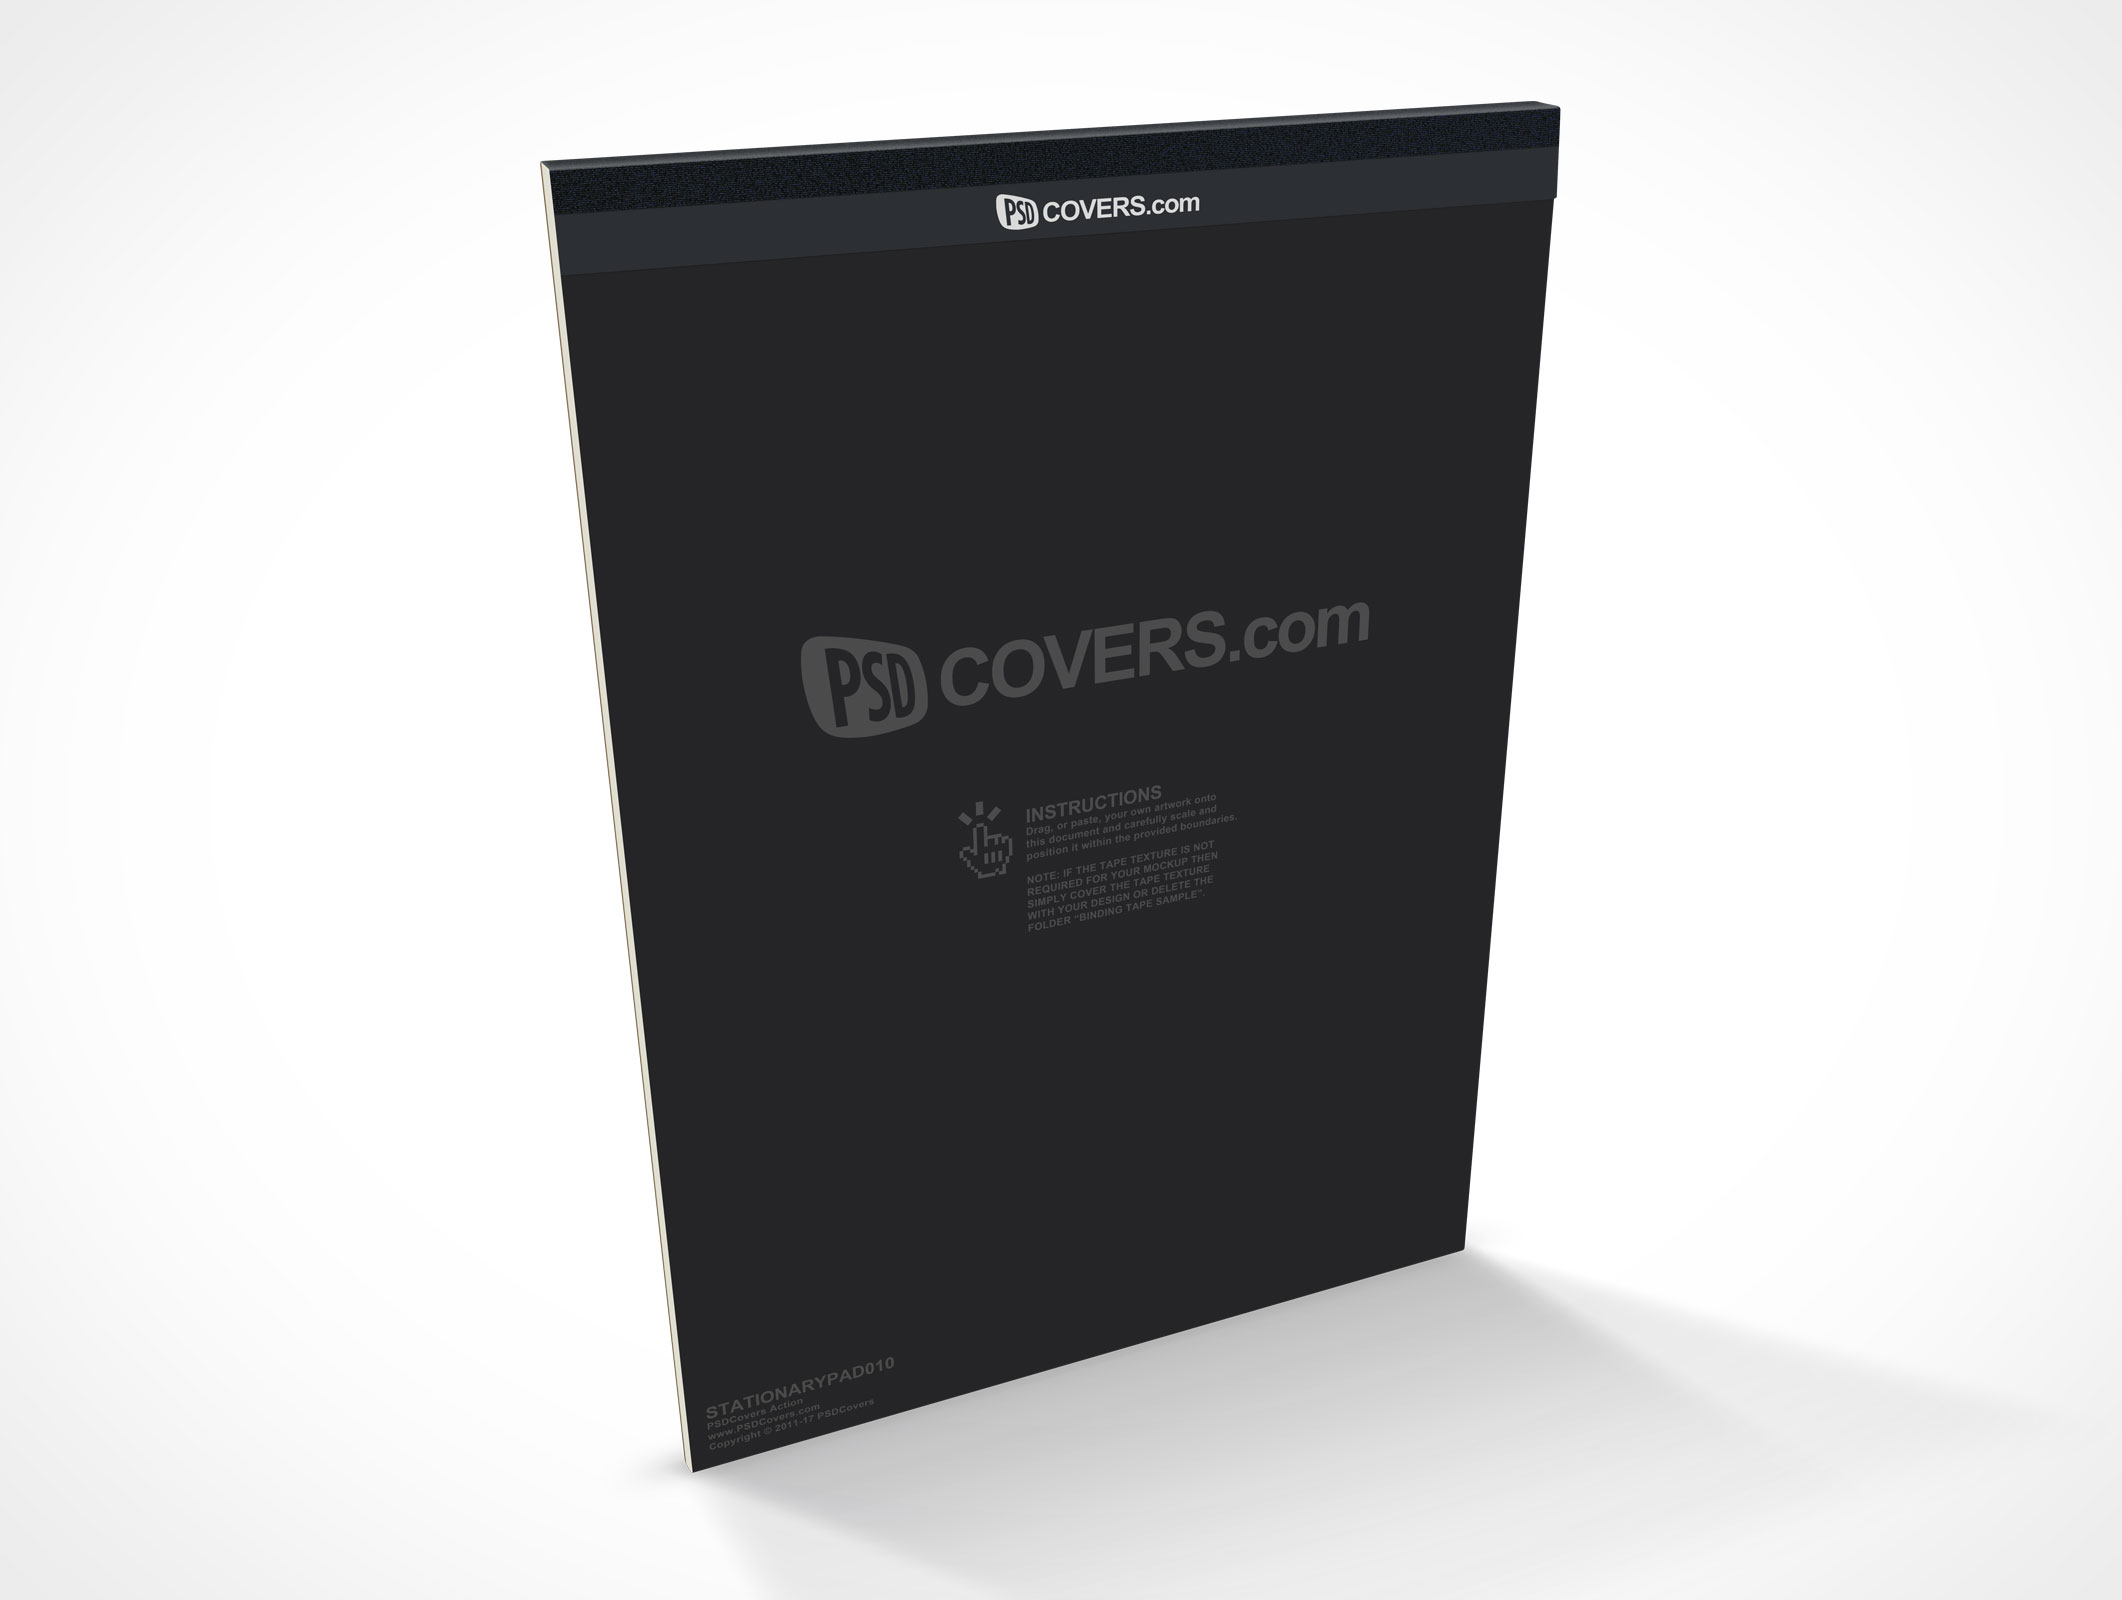 PSD Covers Standing Stationery Note Pad